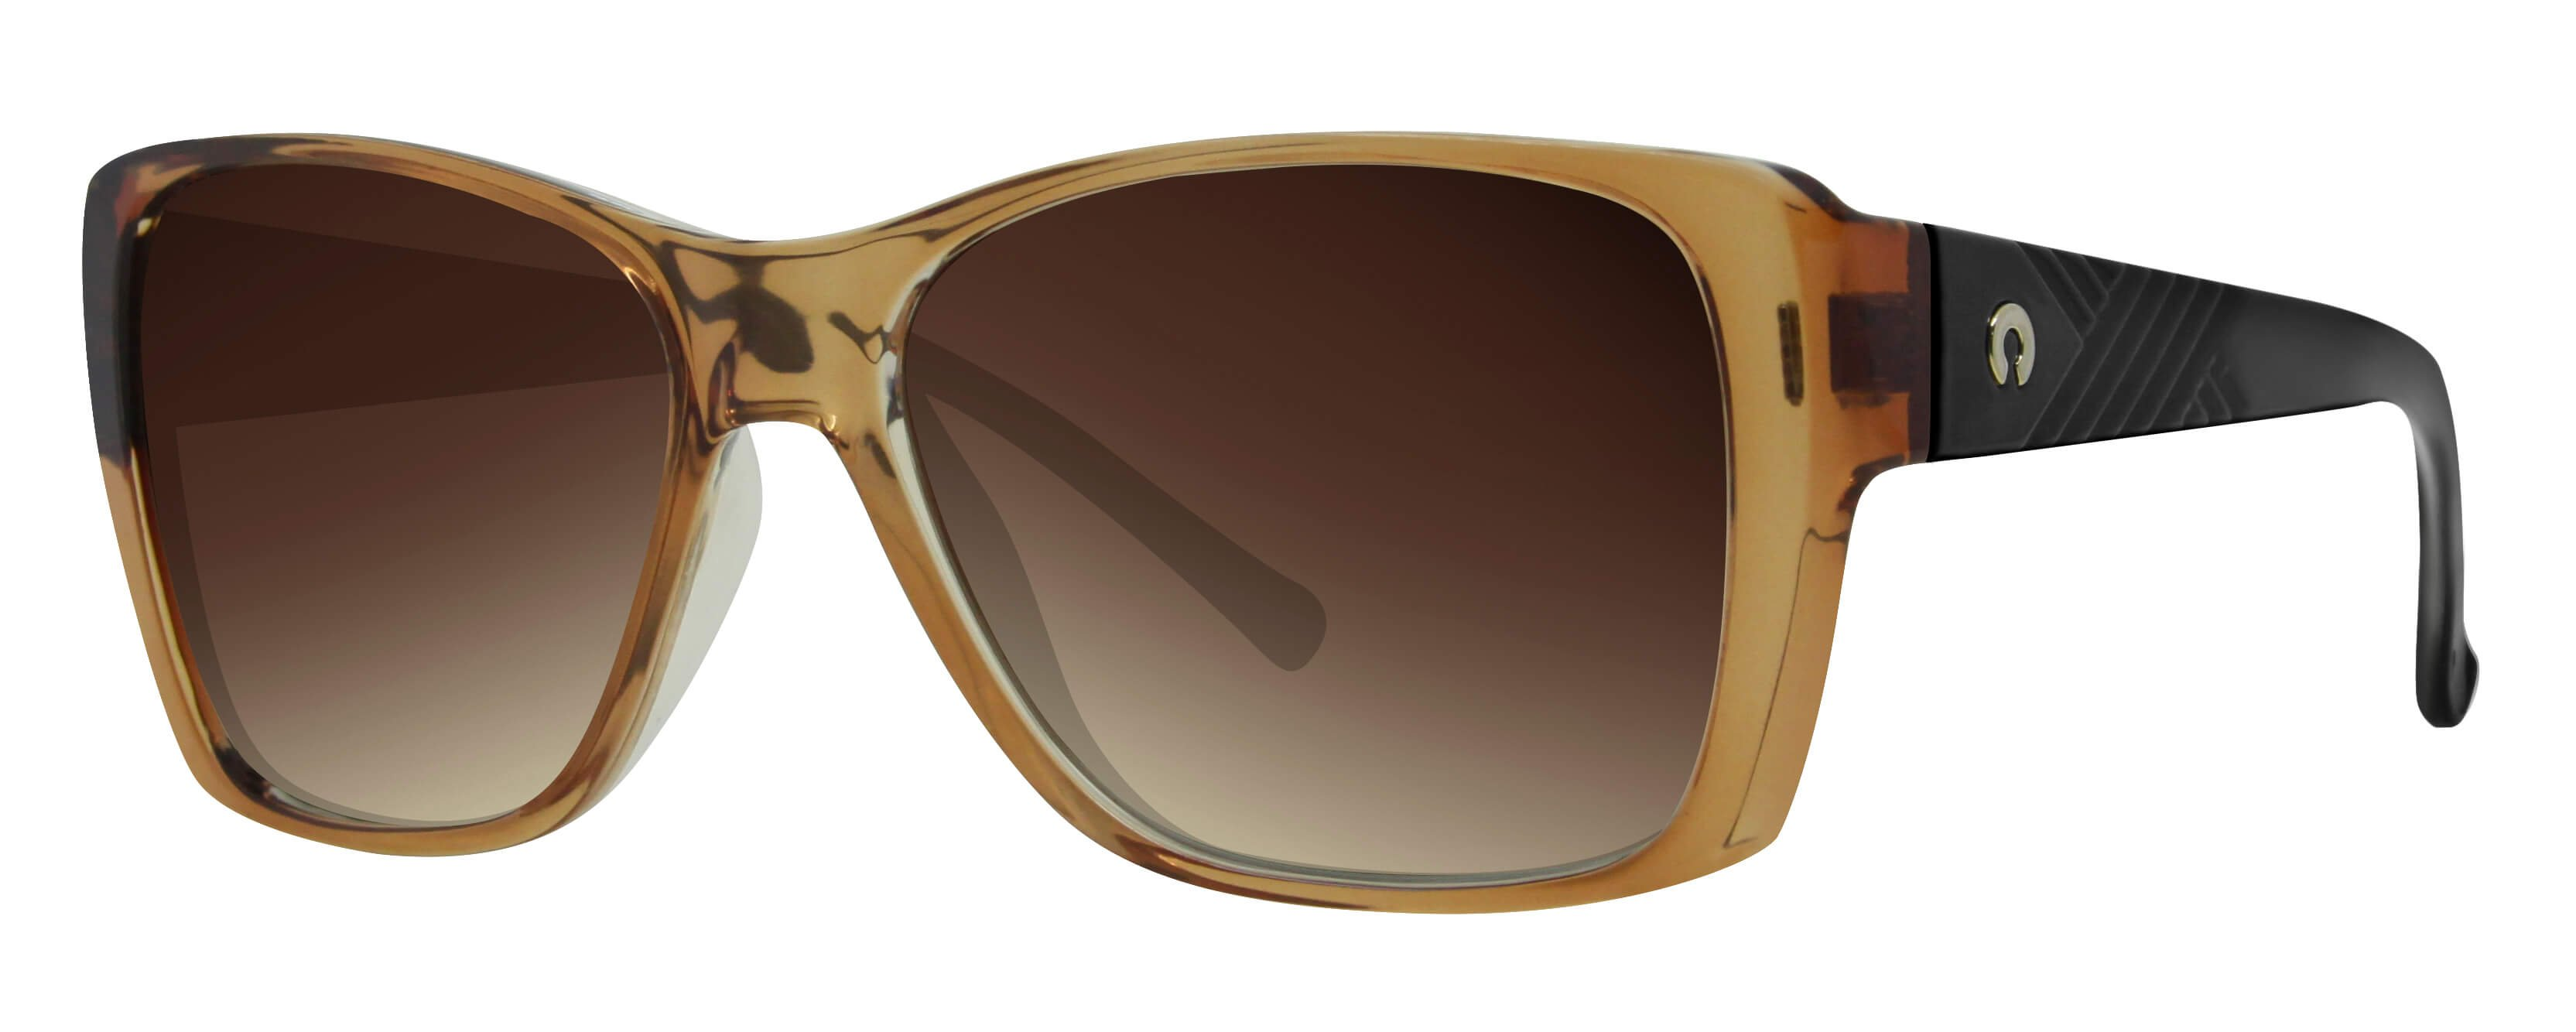 ÓC SECRET SIENNA GLASSY CREAM/BROWN / POLARIZED GRADIENT BROWN